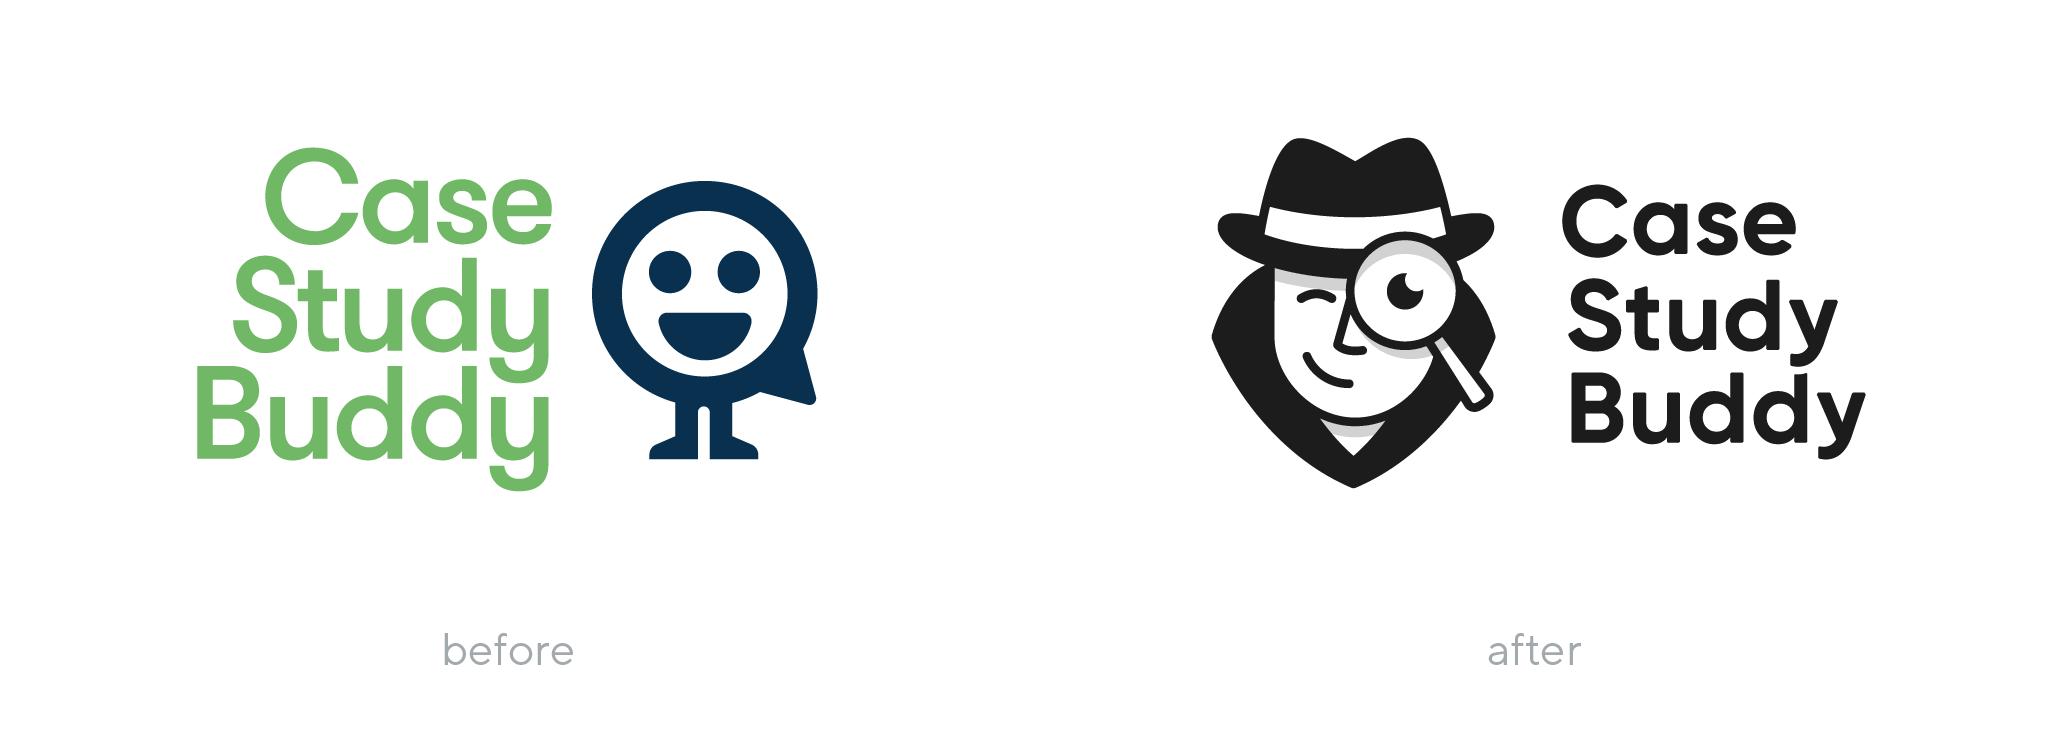 Case Study Buddy before and after rebranding